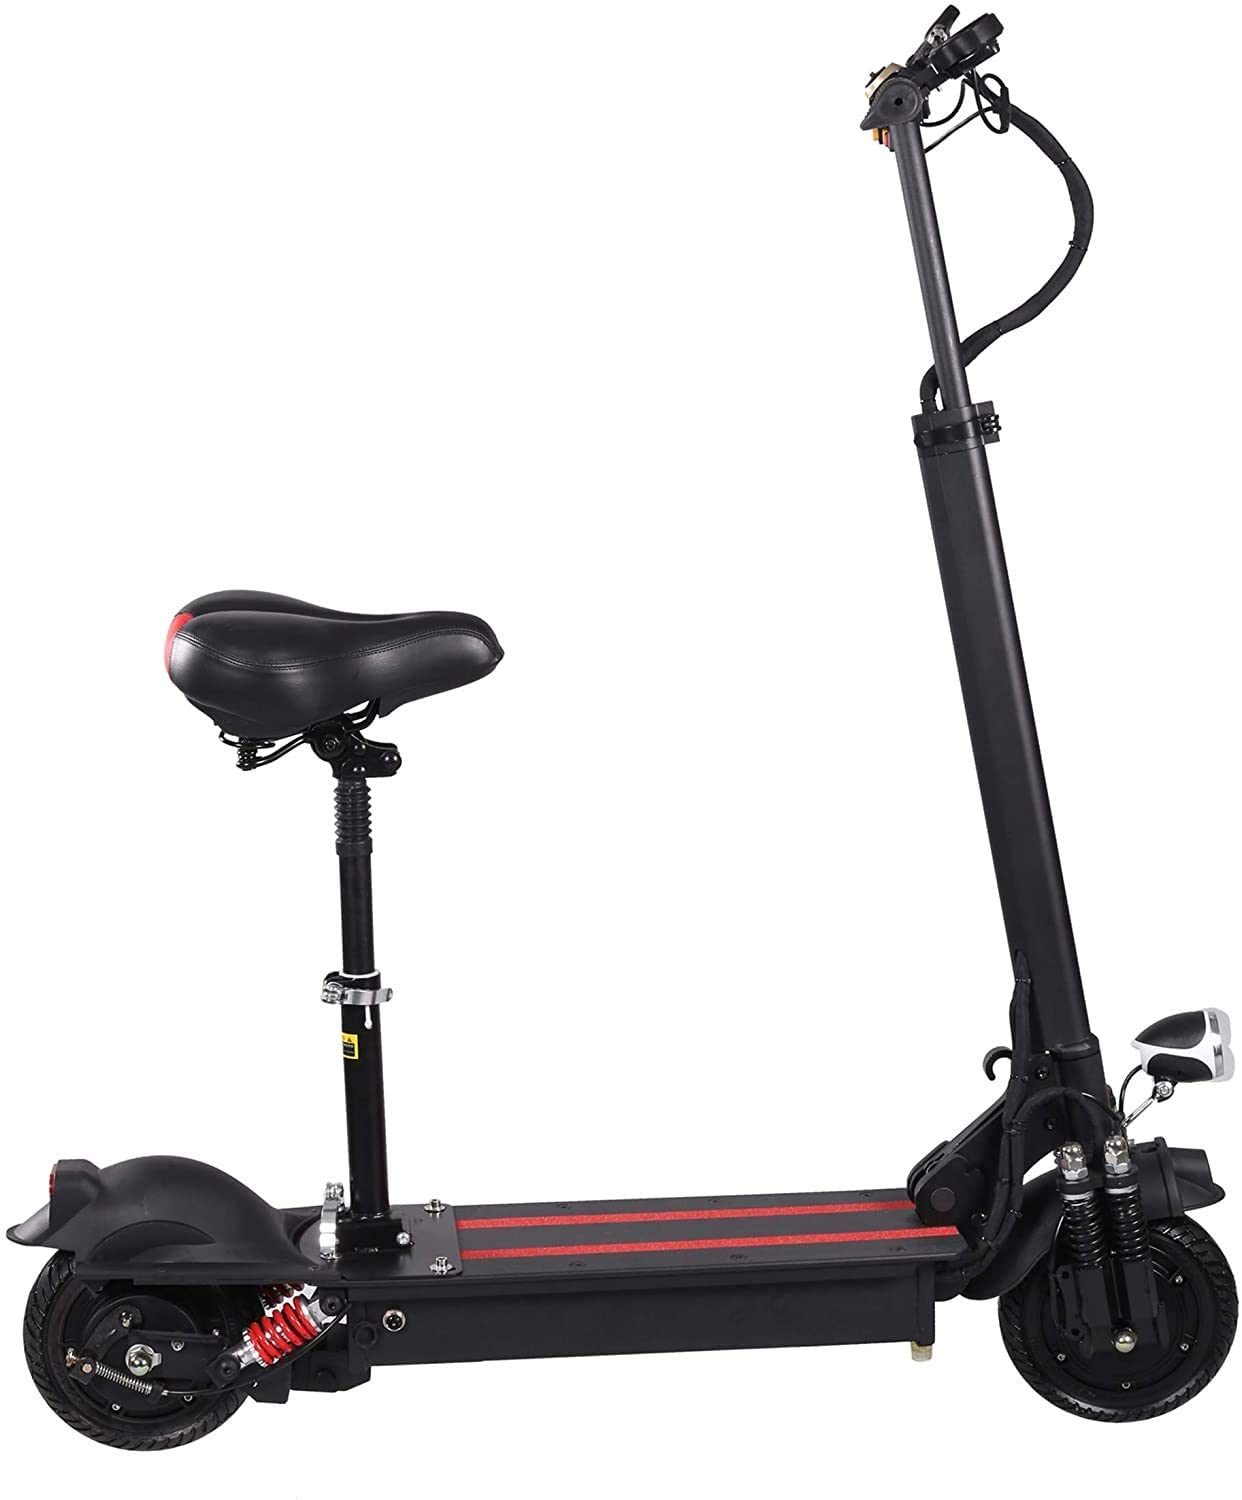 QX Scooter Electric Scooters Adult Foldable, 200 Kg Max Load with Seat 10 inch 50Km/H, Lithium Battery 48V 23Ah, 1000W Rear Wheel Single Motor Drive with Led Light and Hd Display,100Km Range,Black